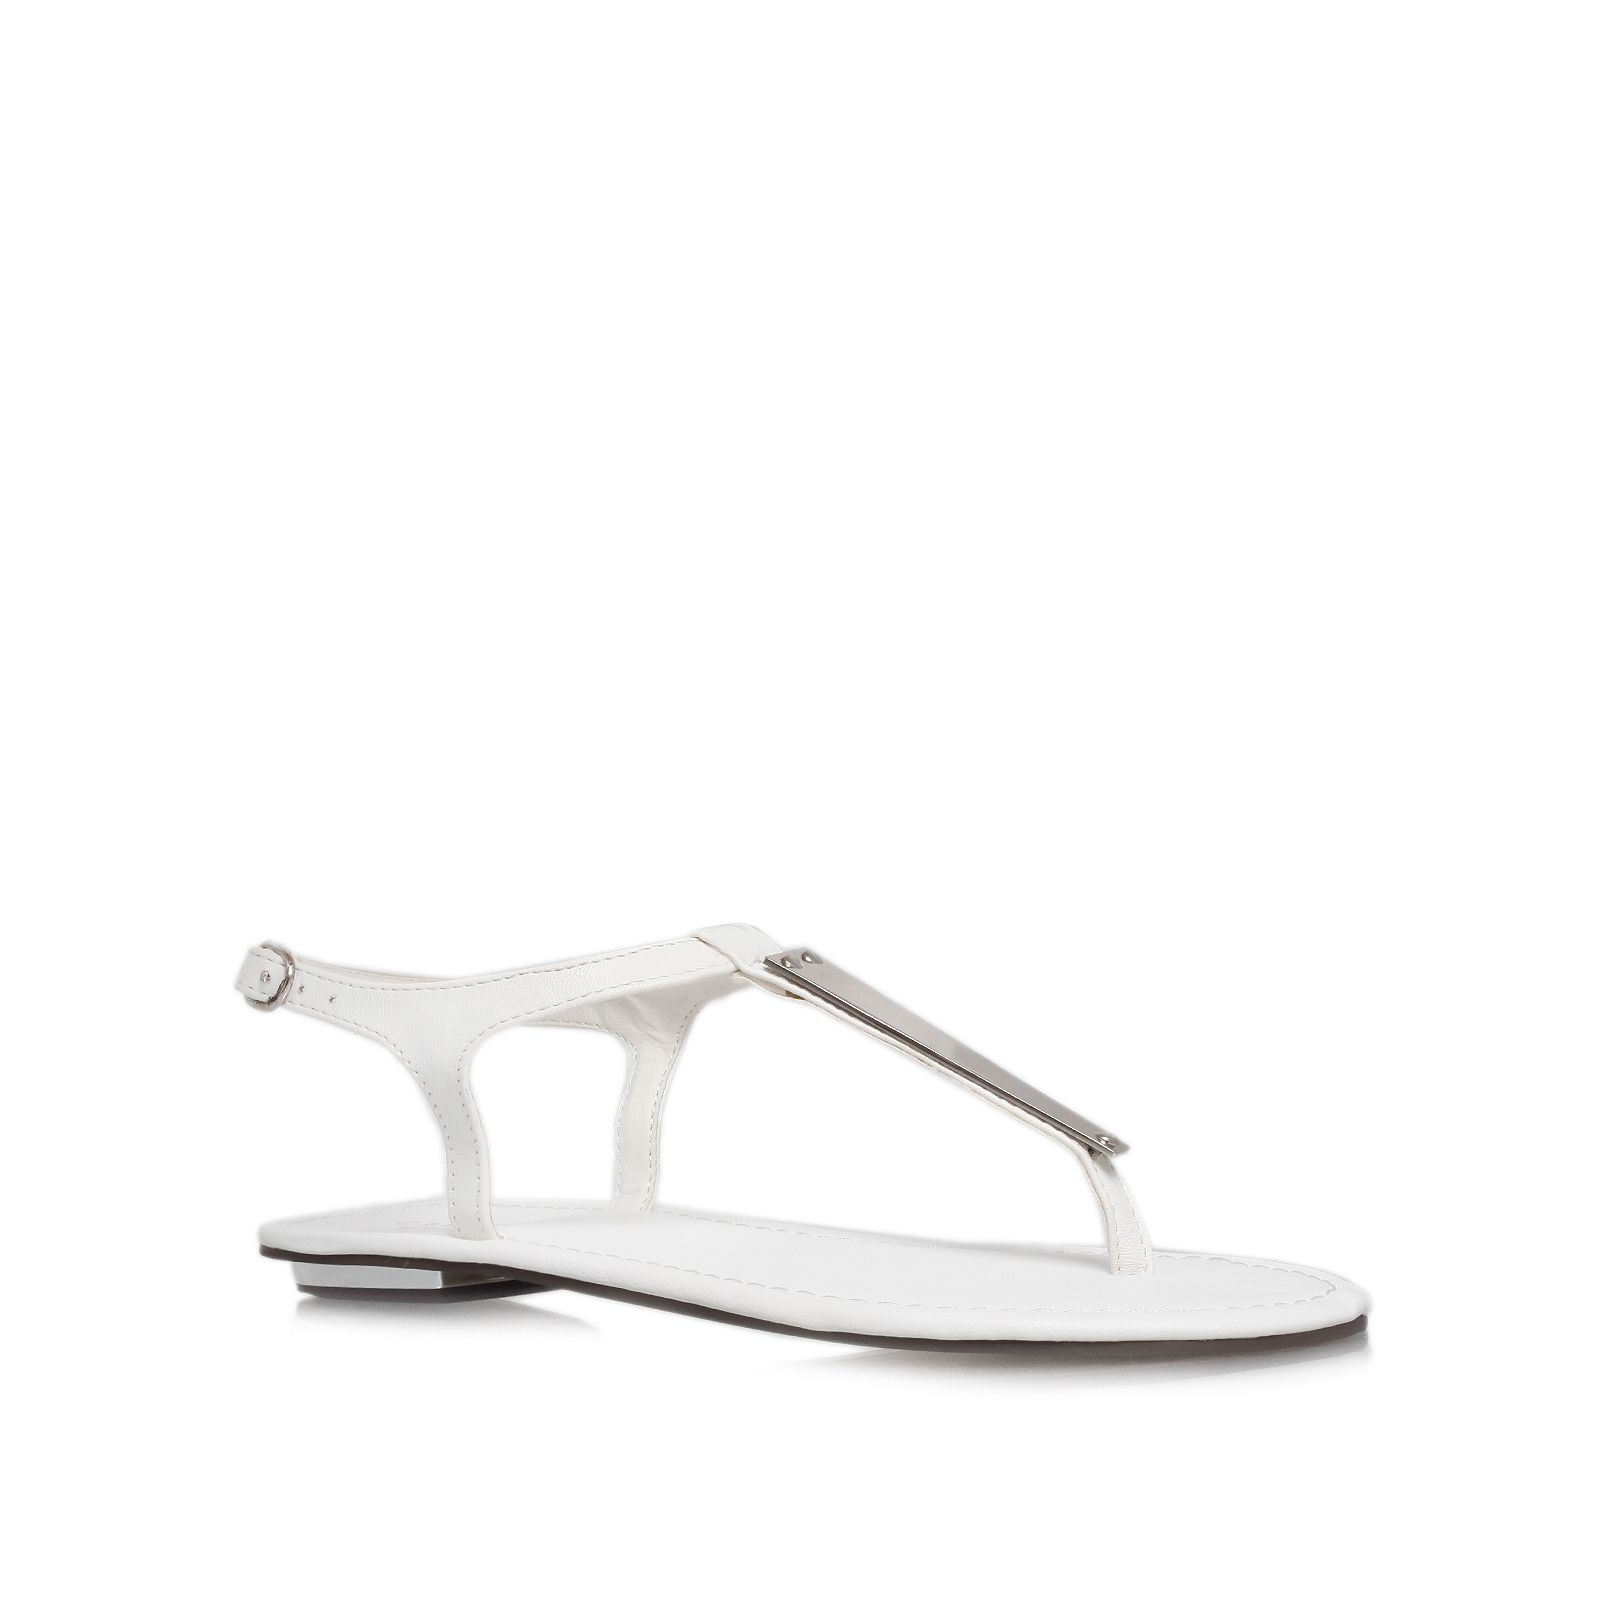 Kindred flat sandals